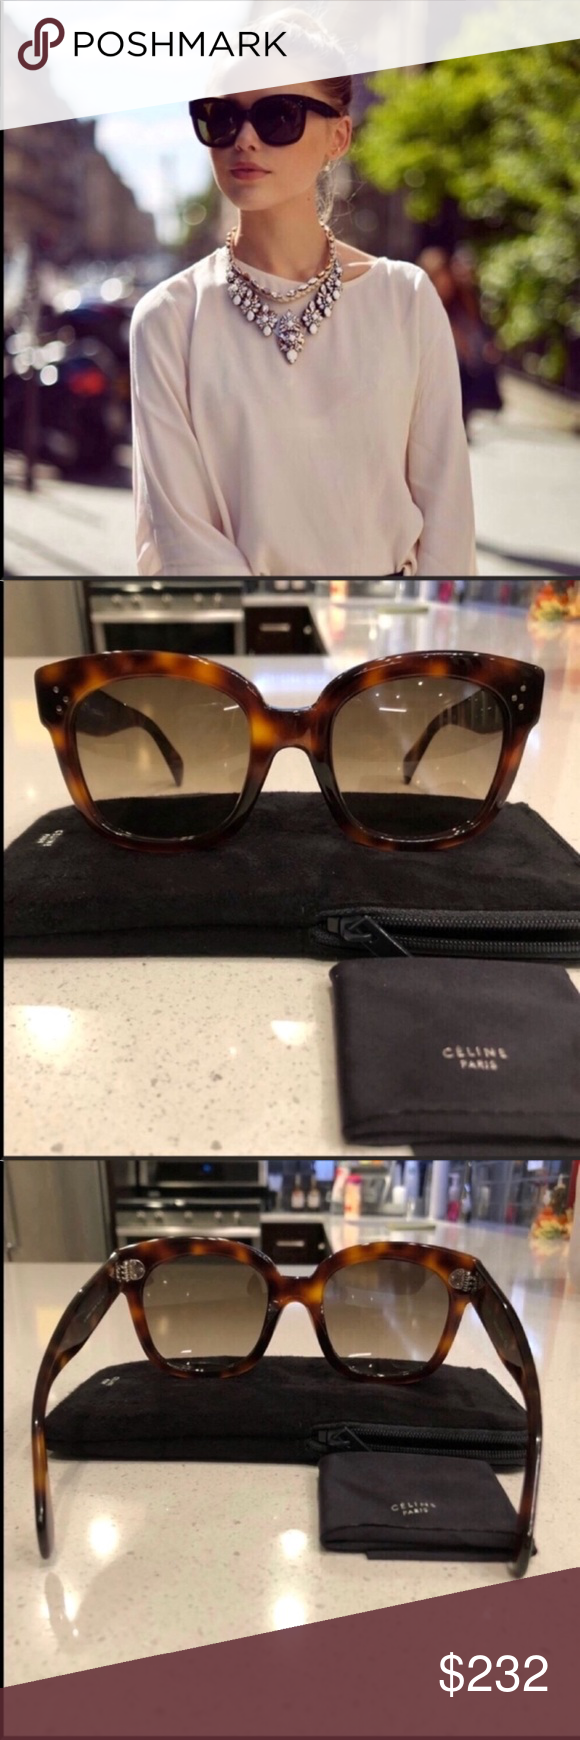 b31ae74124f 100% authentic Includes original Celine case and Celine cloth. Please no  low ball offers! Celine Accessories Sunglasses